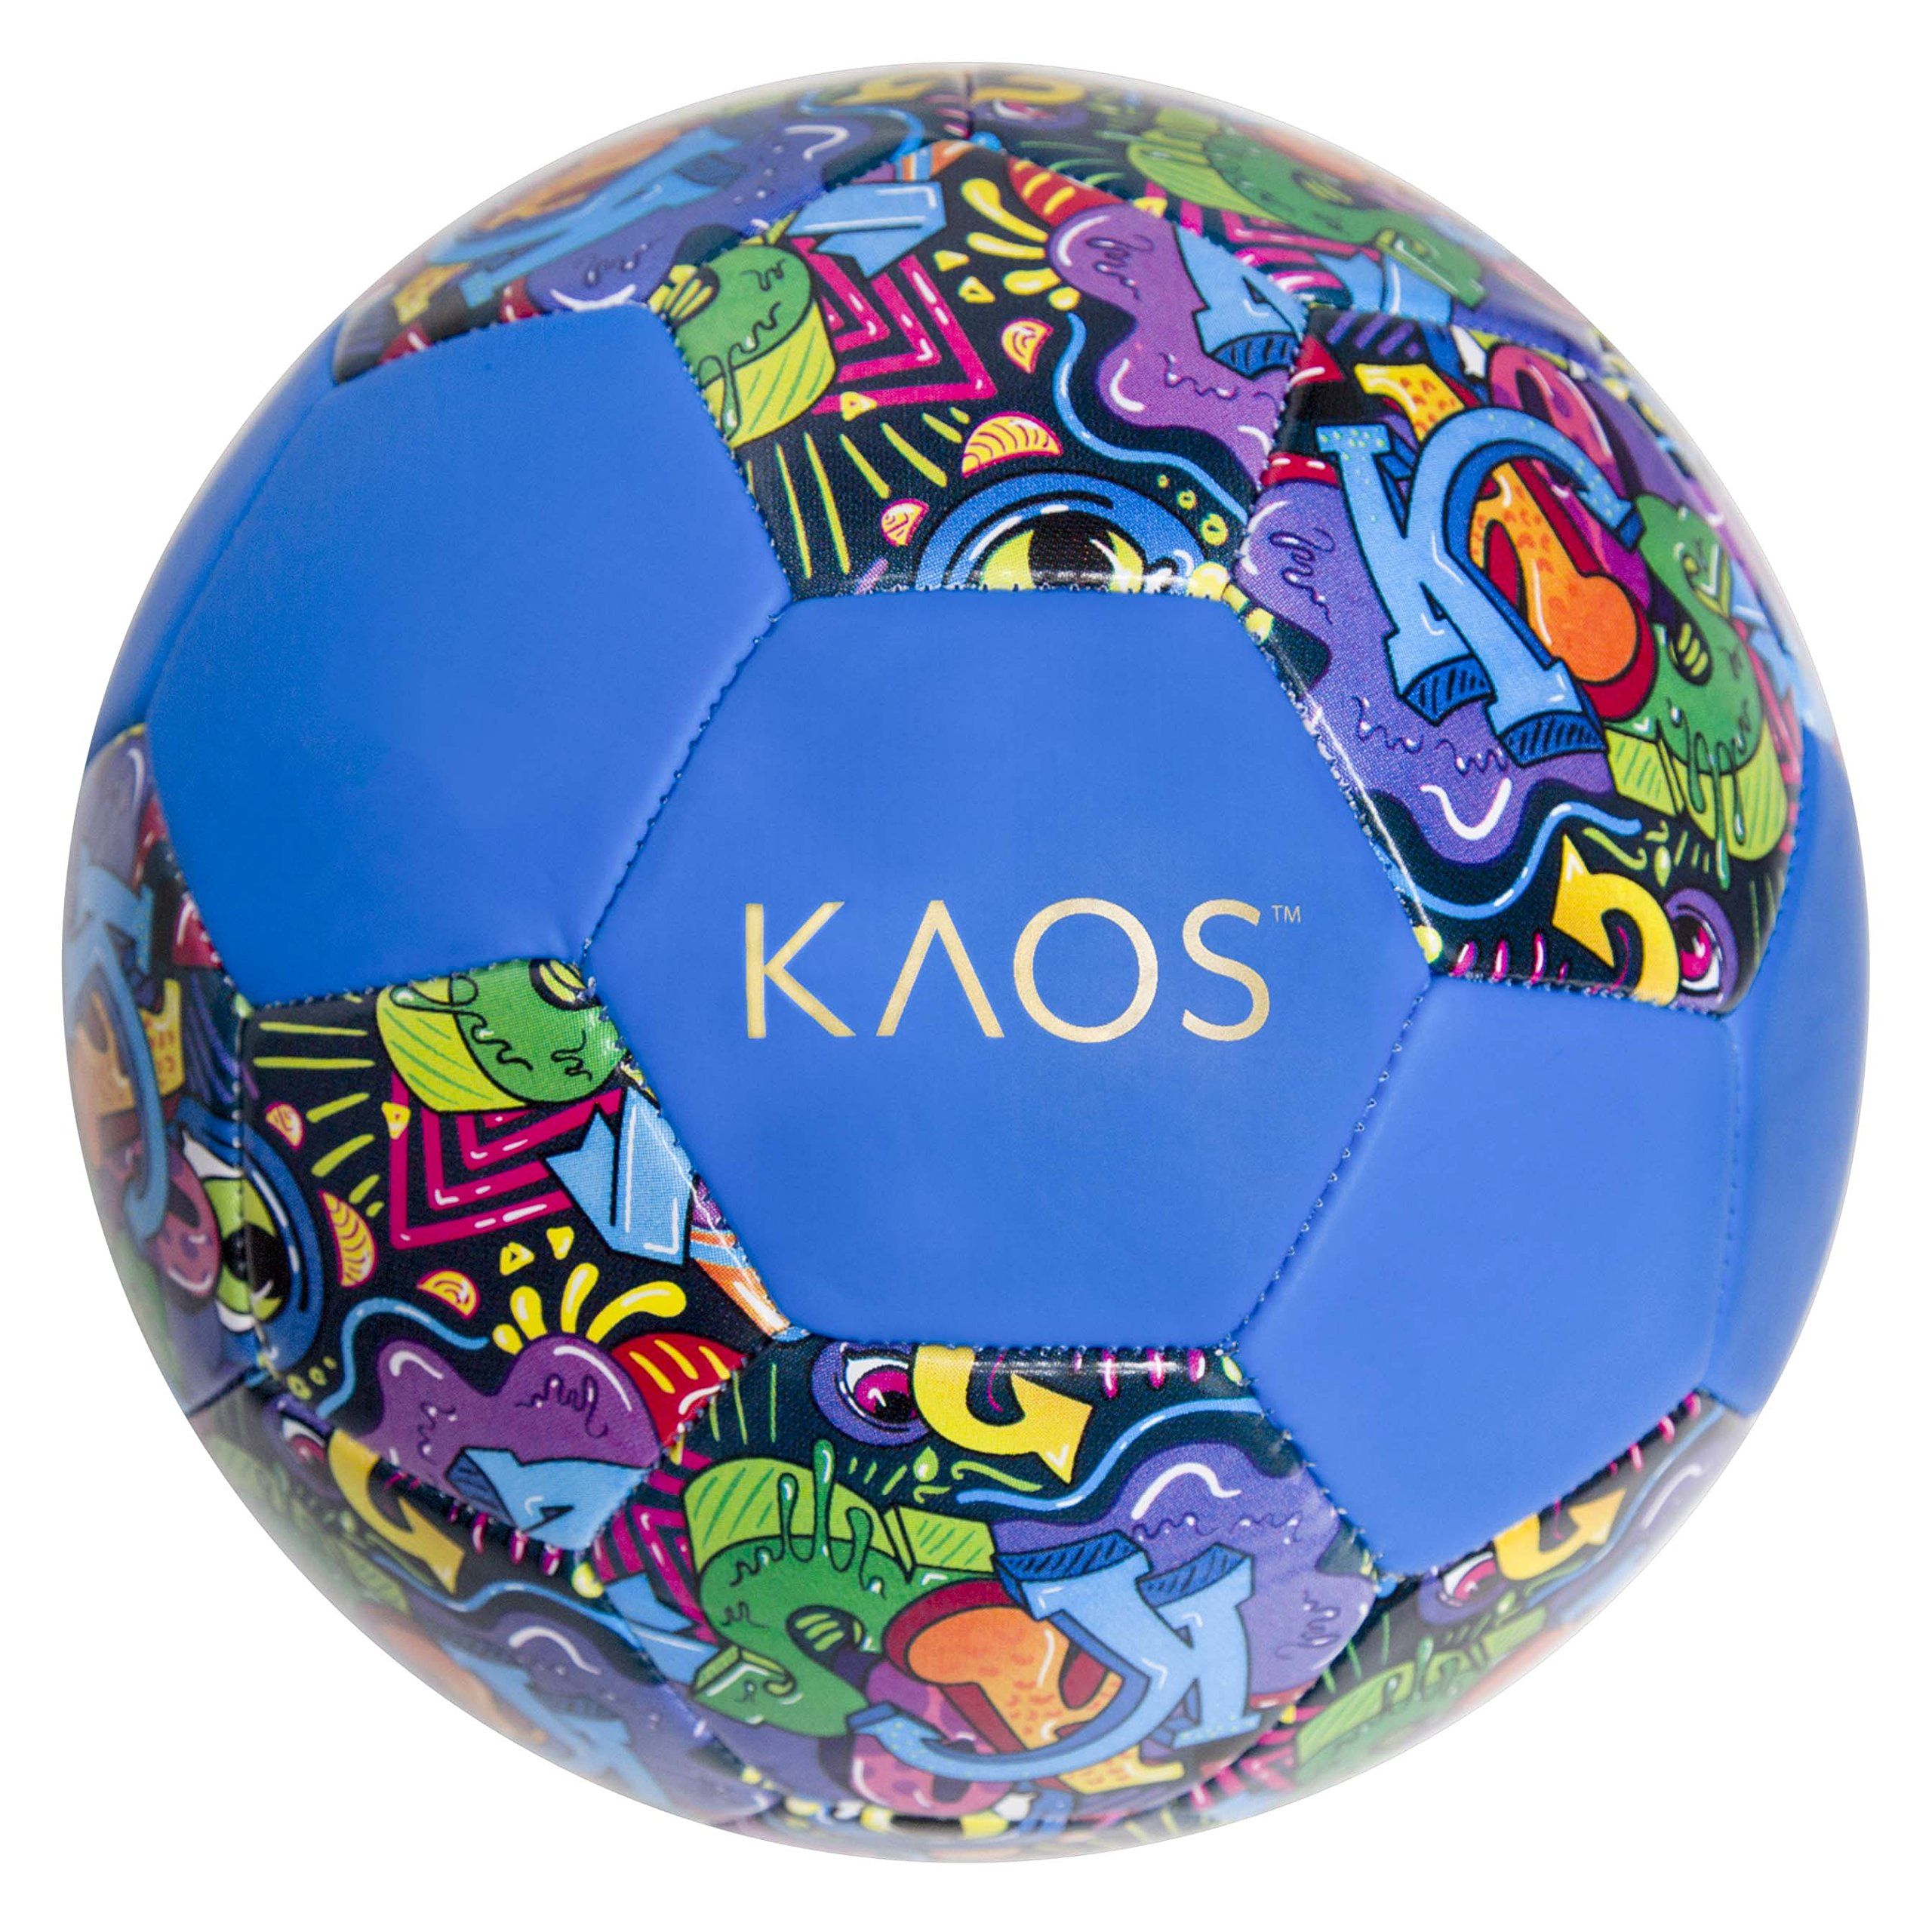 KAOS Color Bomb, Training and Recreation Soccer Ball, Blue w Multi Colored Graphics, Size 5 by KAOS Soccer